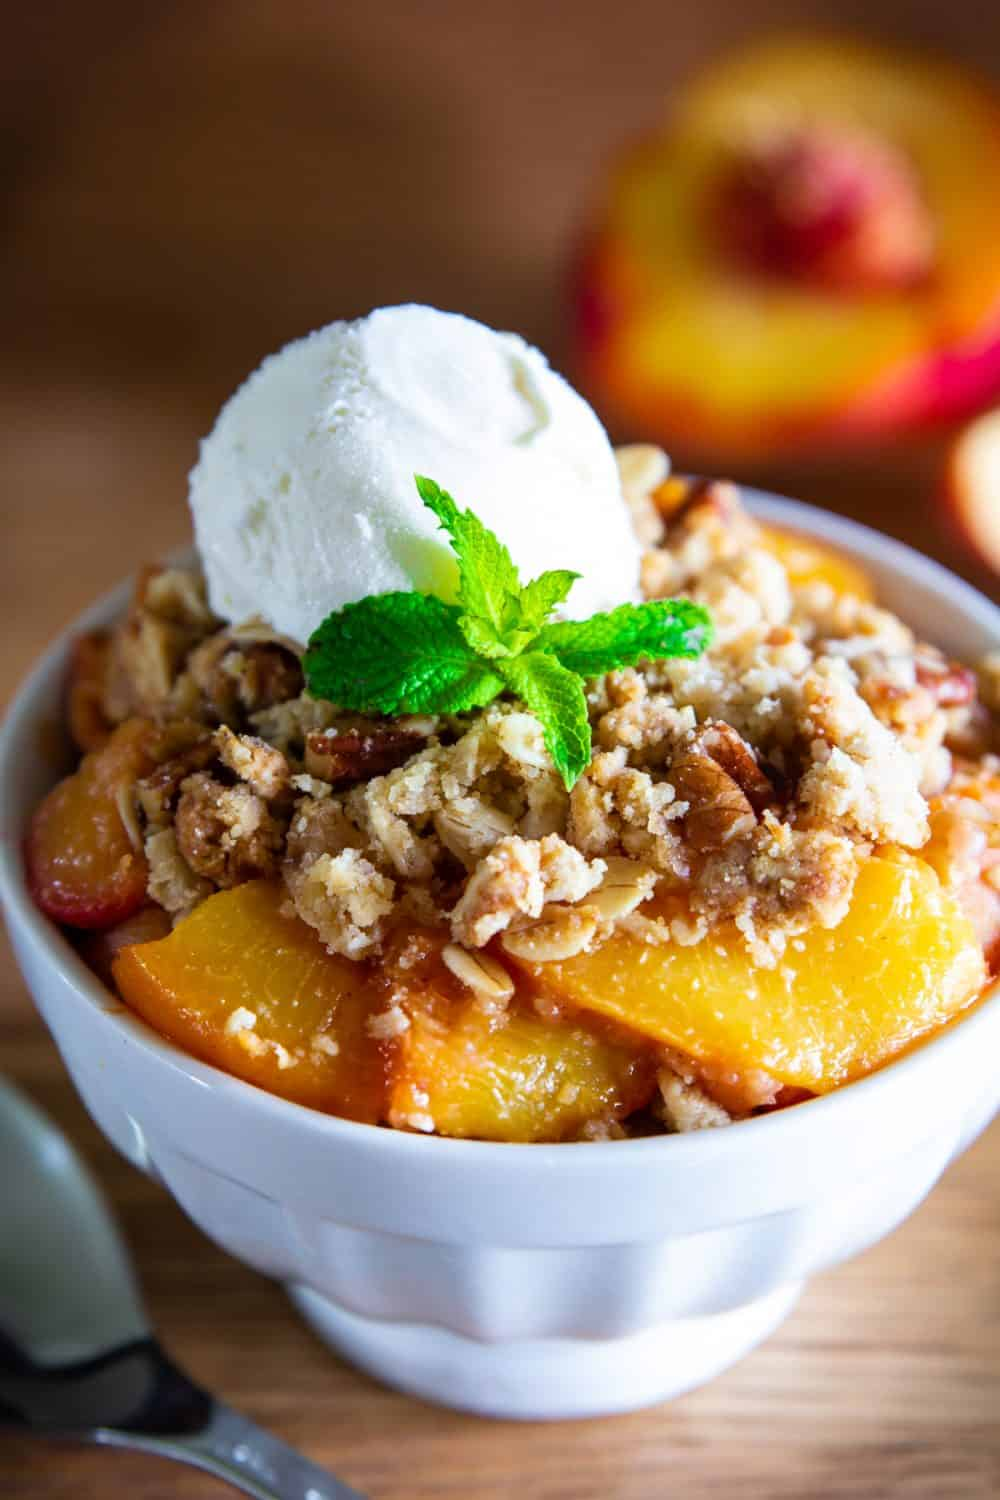 close up image of homemade peach crisp with crumb topping and vanilla ice cream on top with a garnish of mint